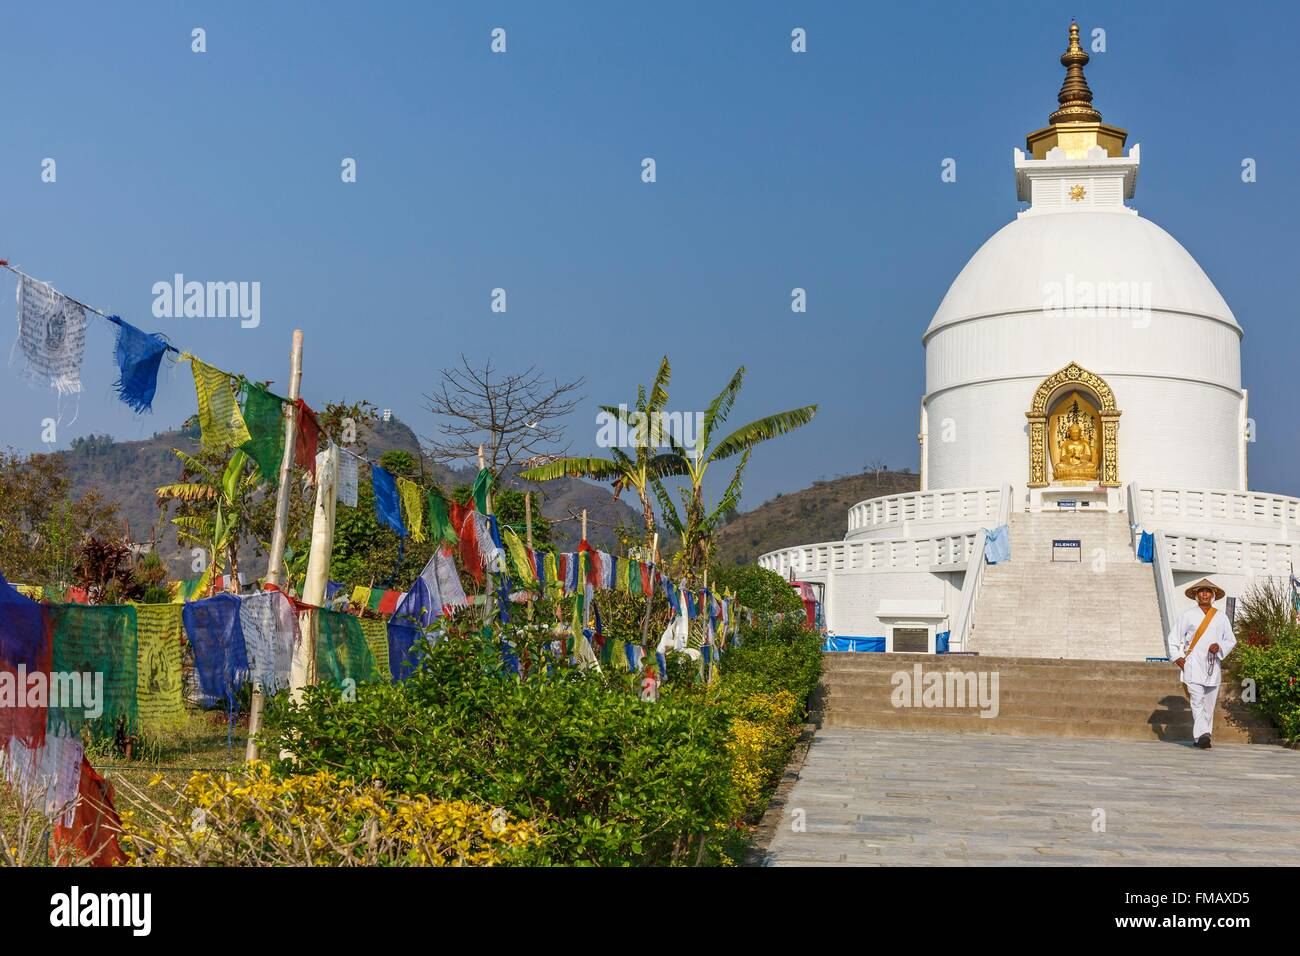 Nepal, Gandaki zone, Pokhara, World Peace stupa - Stock Image